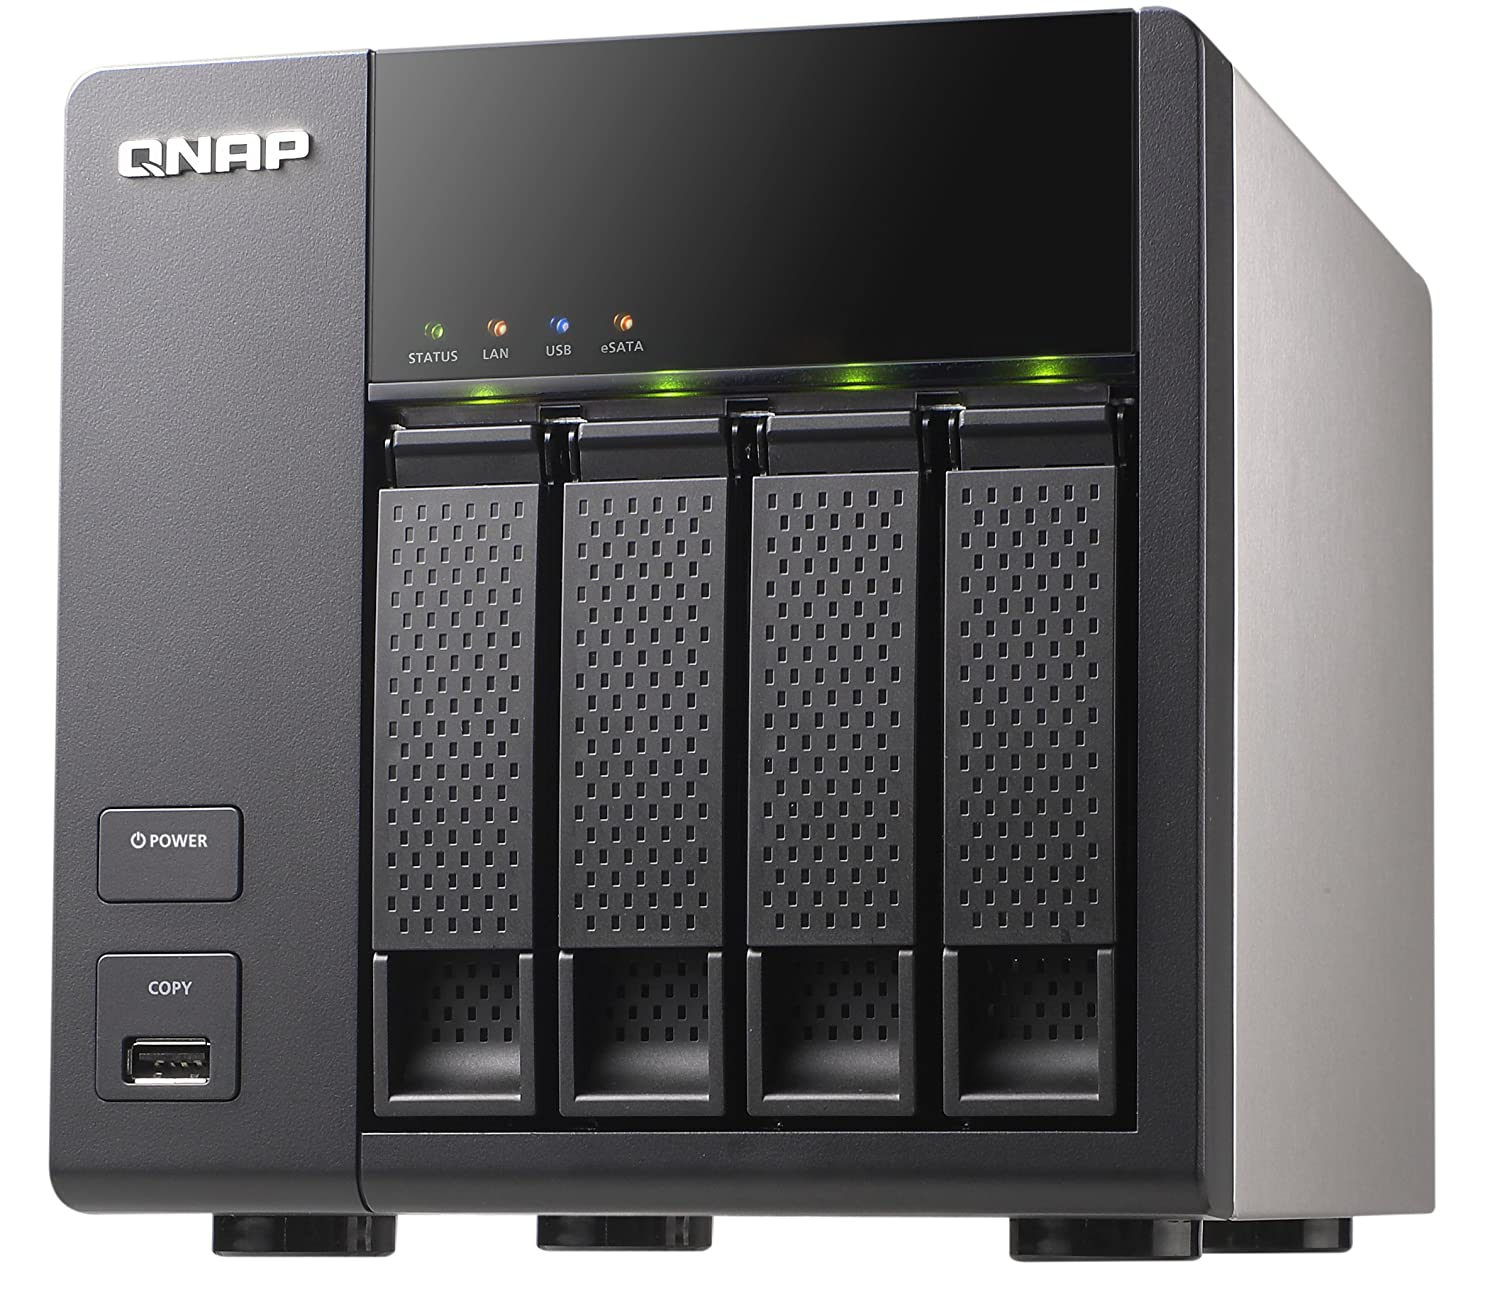 QNAP TS-439 TURBO NAS QTS WINDOWS 8 DRIVERS DOWNLOAD